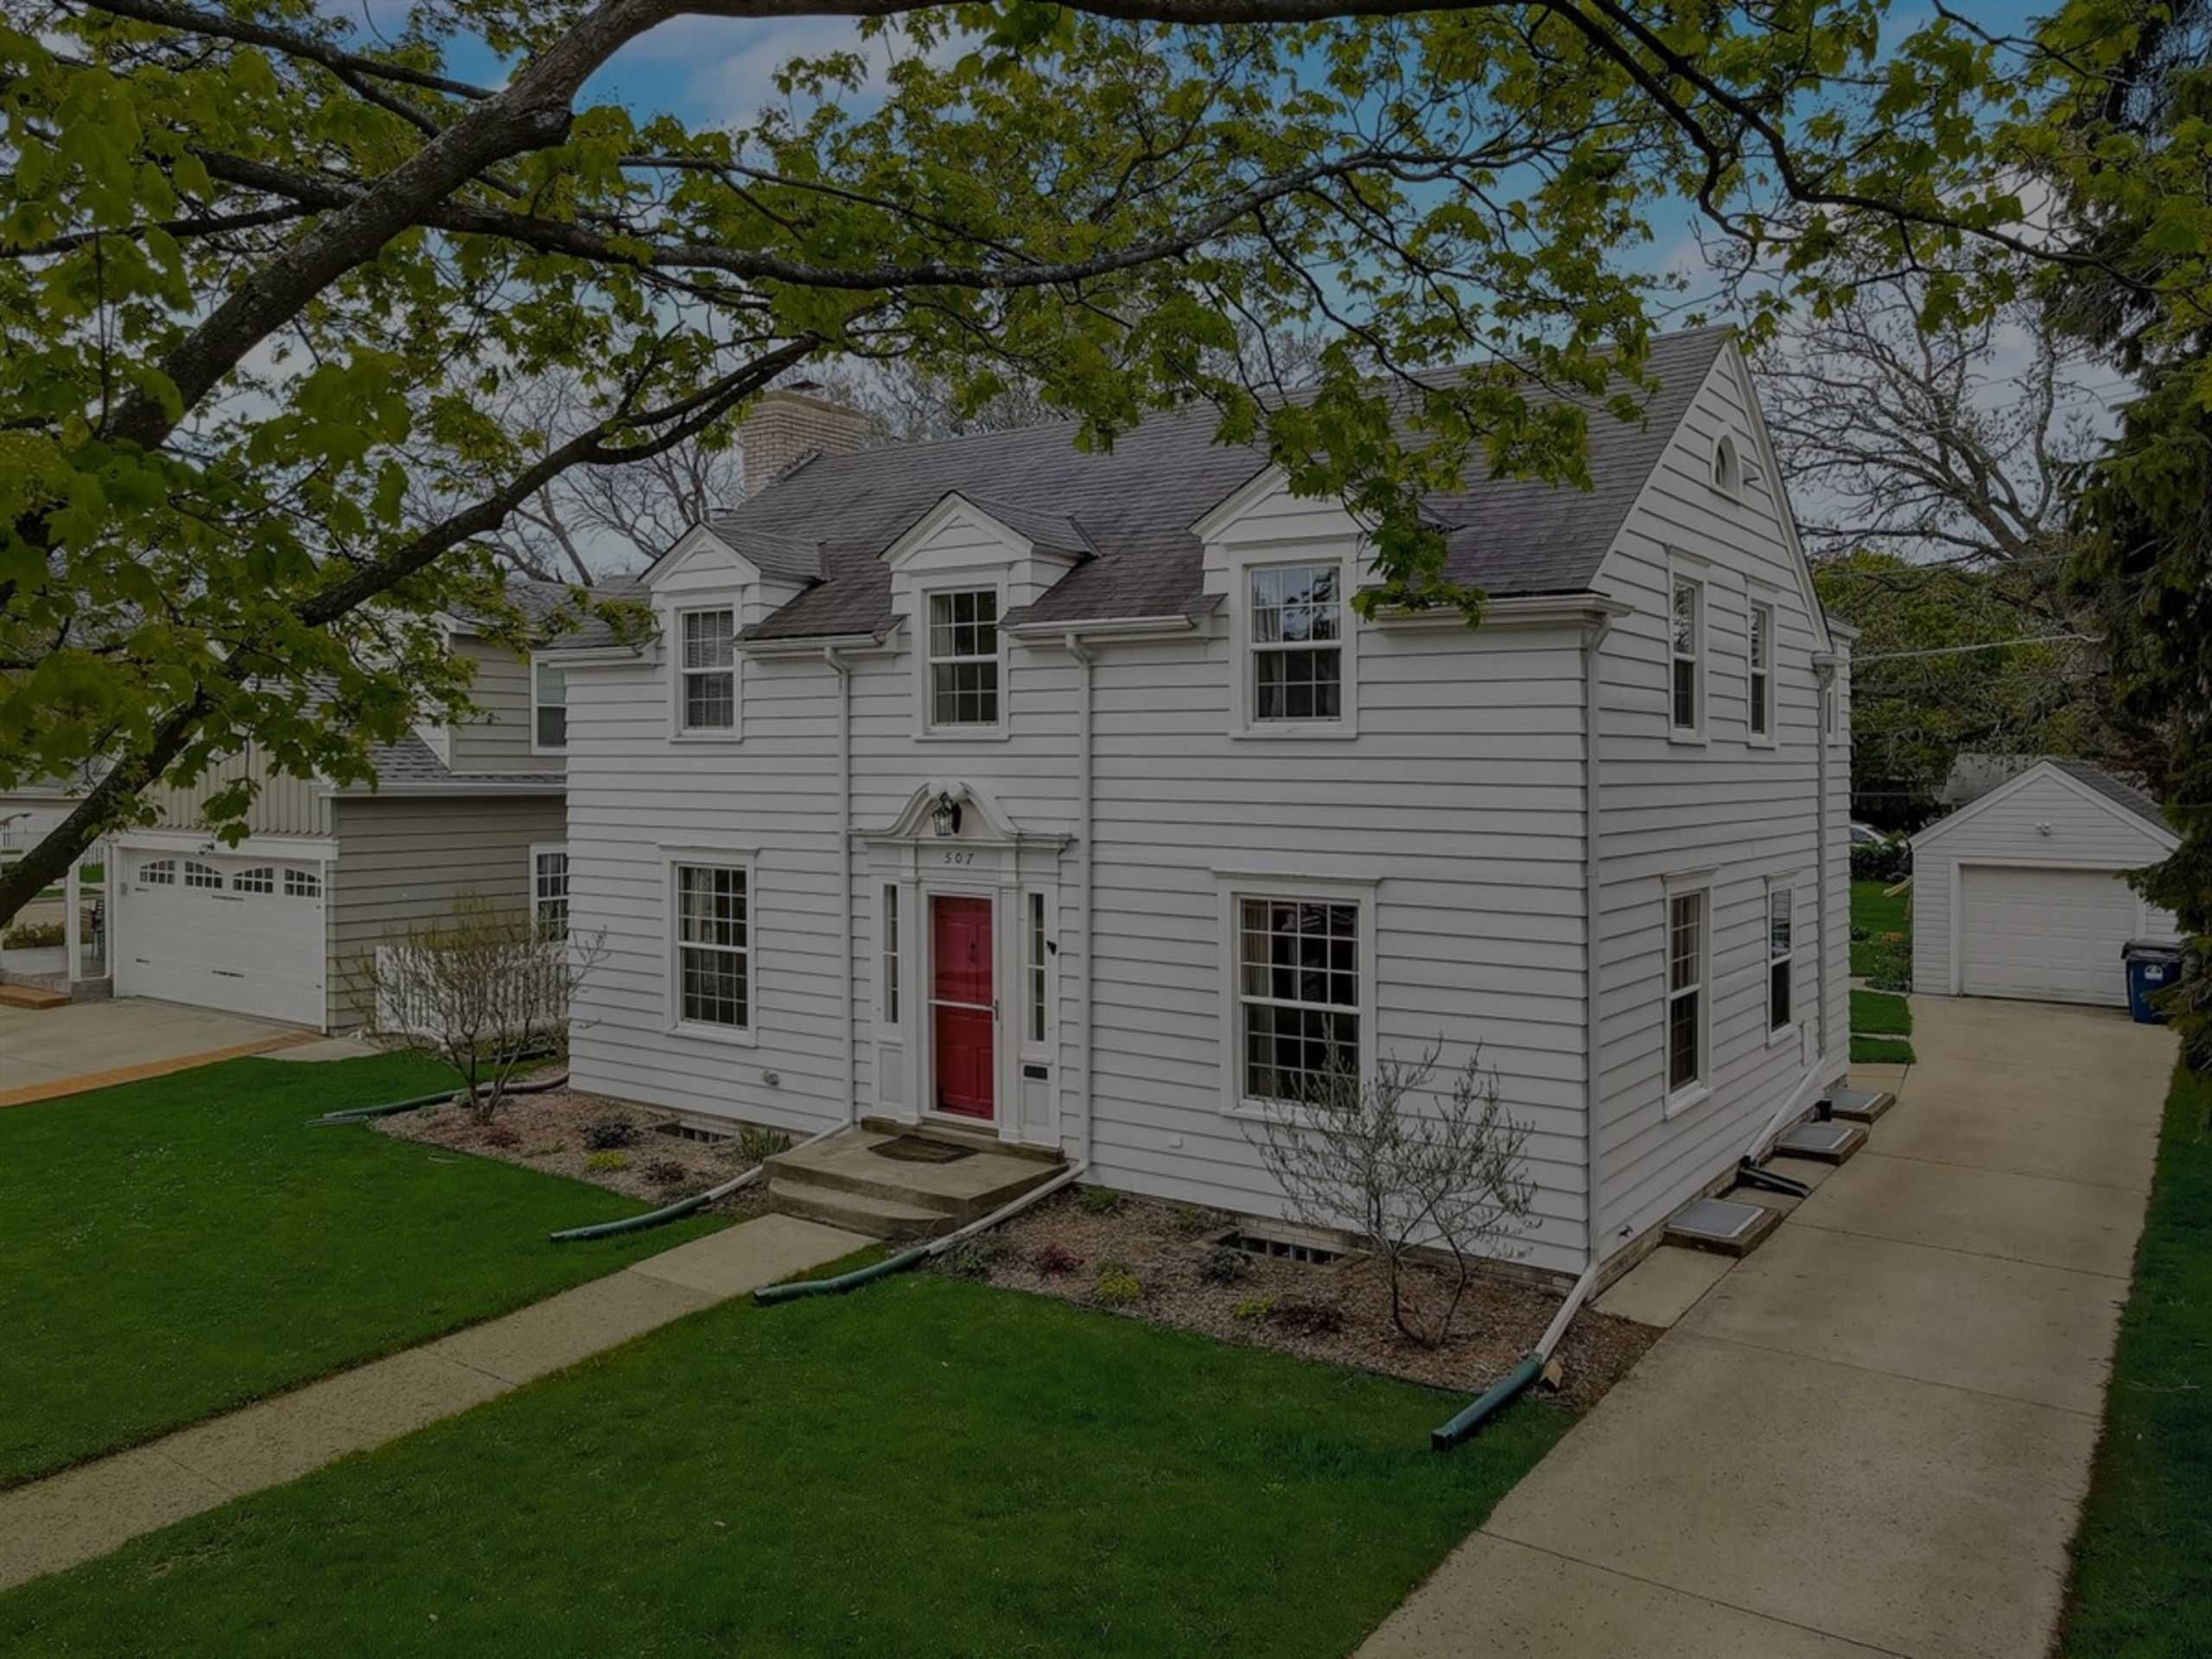 COMING SOON – 507 Melvin Ave. Racine, WI 53402